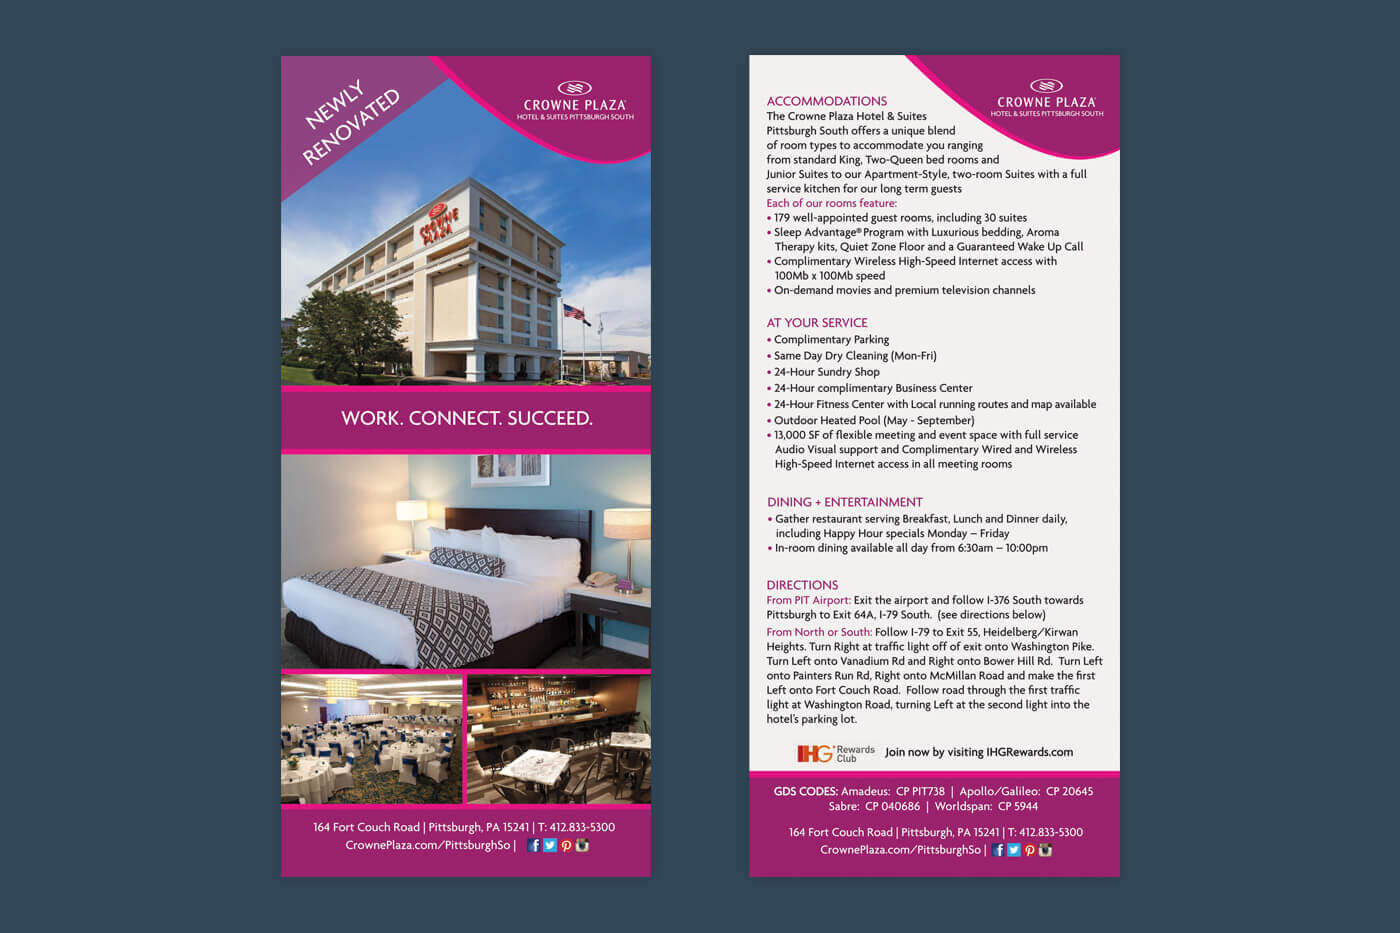 Marketing Collateral - Crowne Plaza Pittsburgh South Rackcard